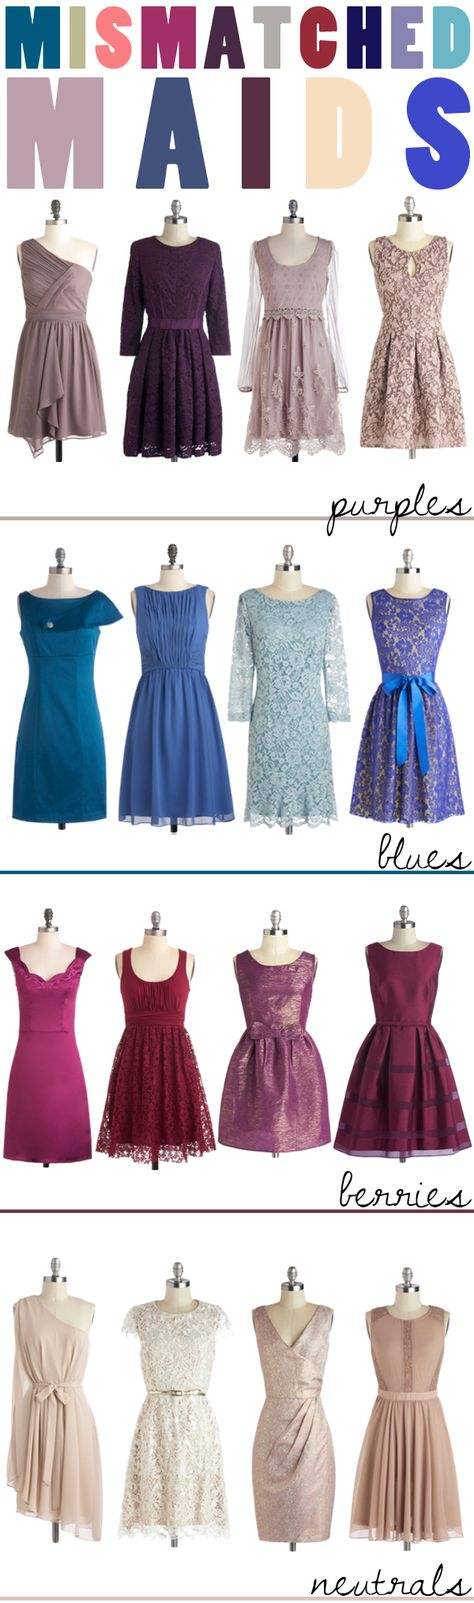 Mismatched Maids: pairing dresses in different hues & textures.